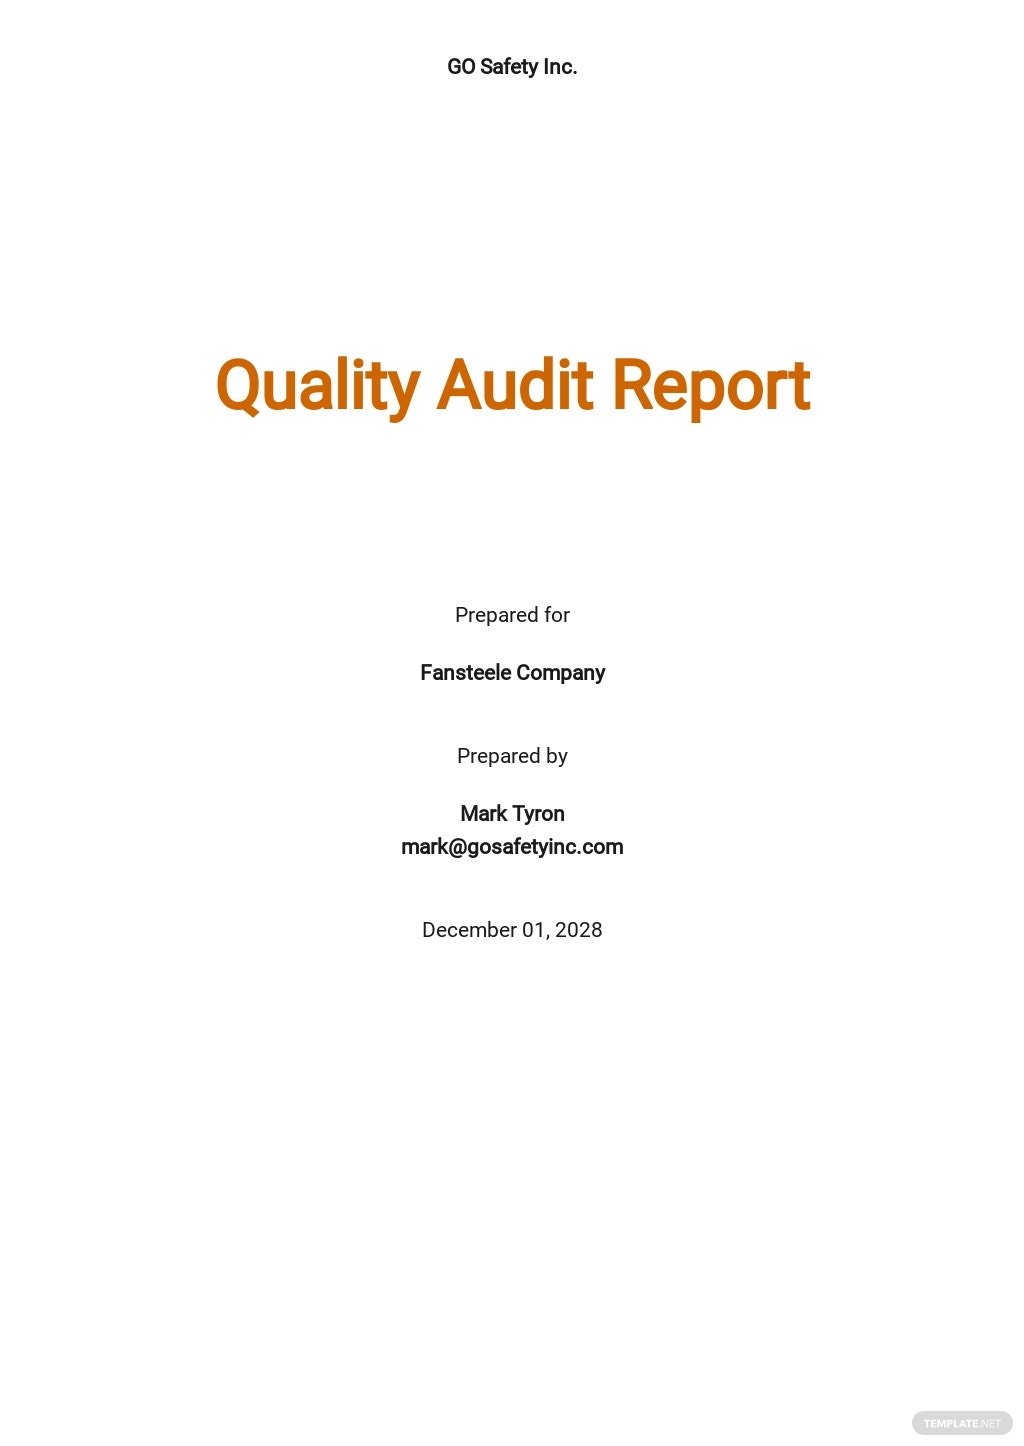 Quality Audit Report Template.jpe